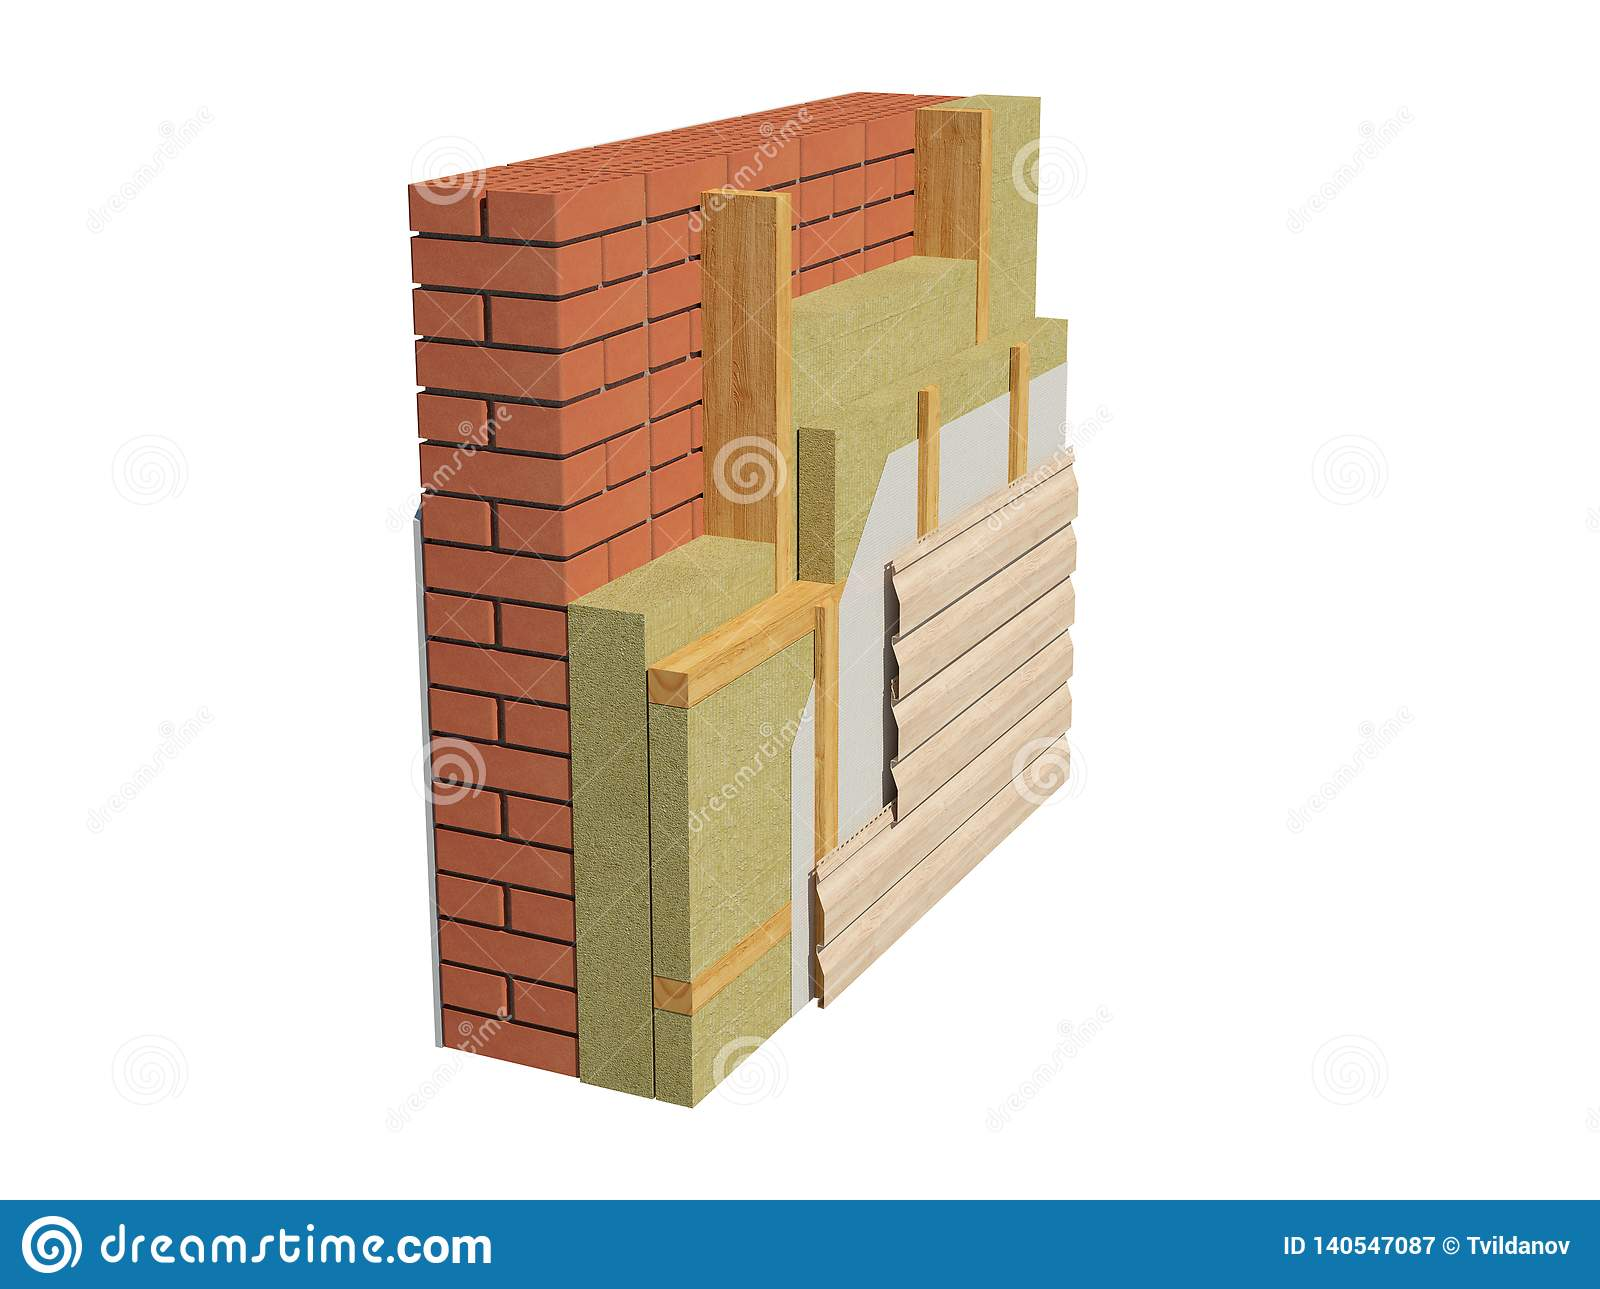 3d Render Image Of Insulated Brick House Wall  Stock